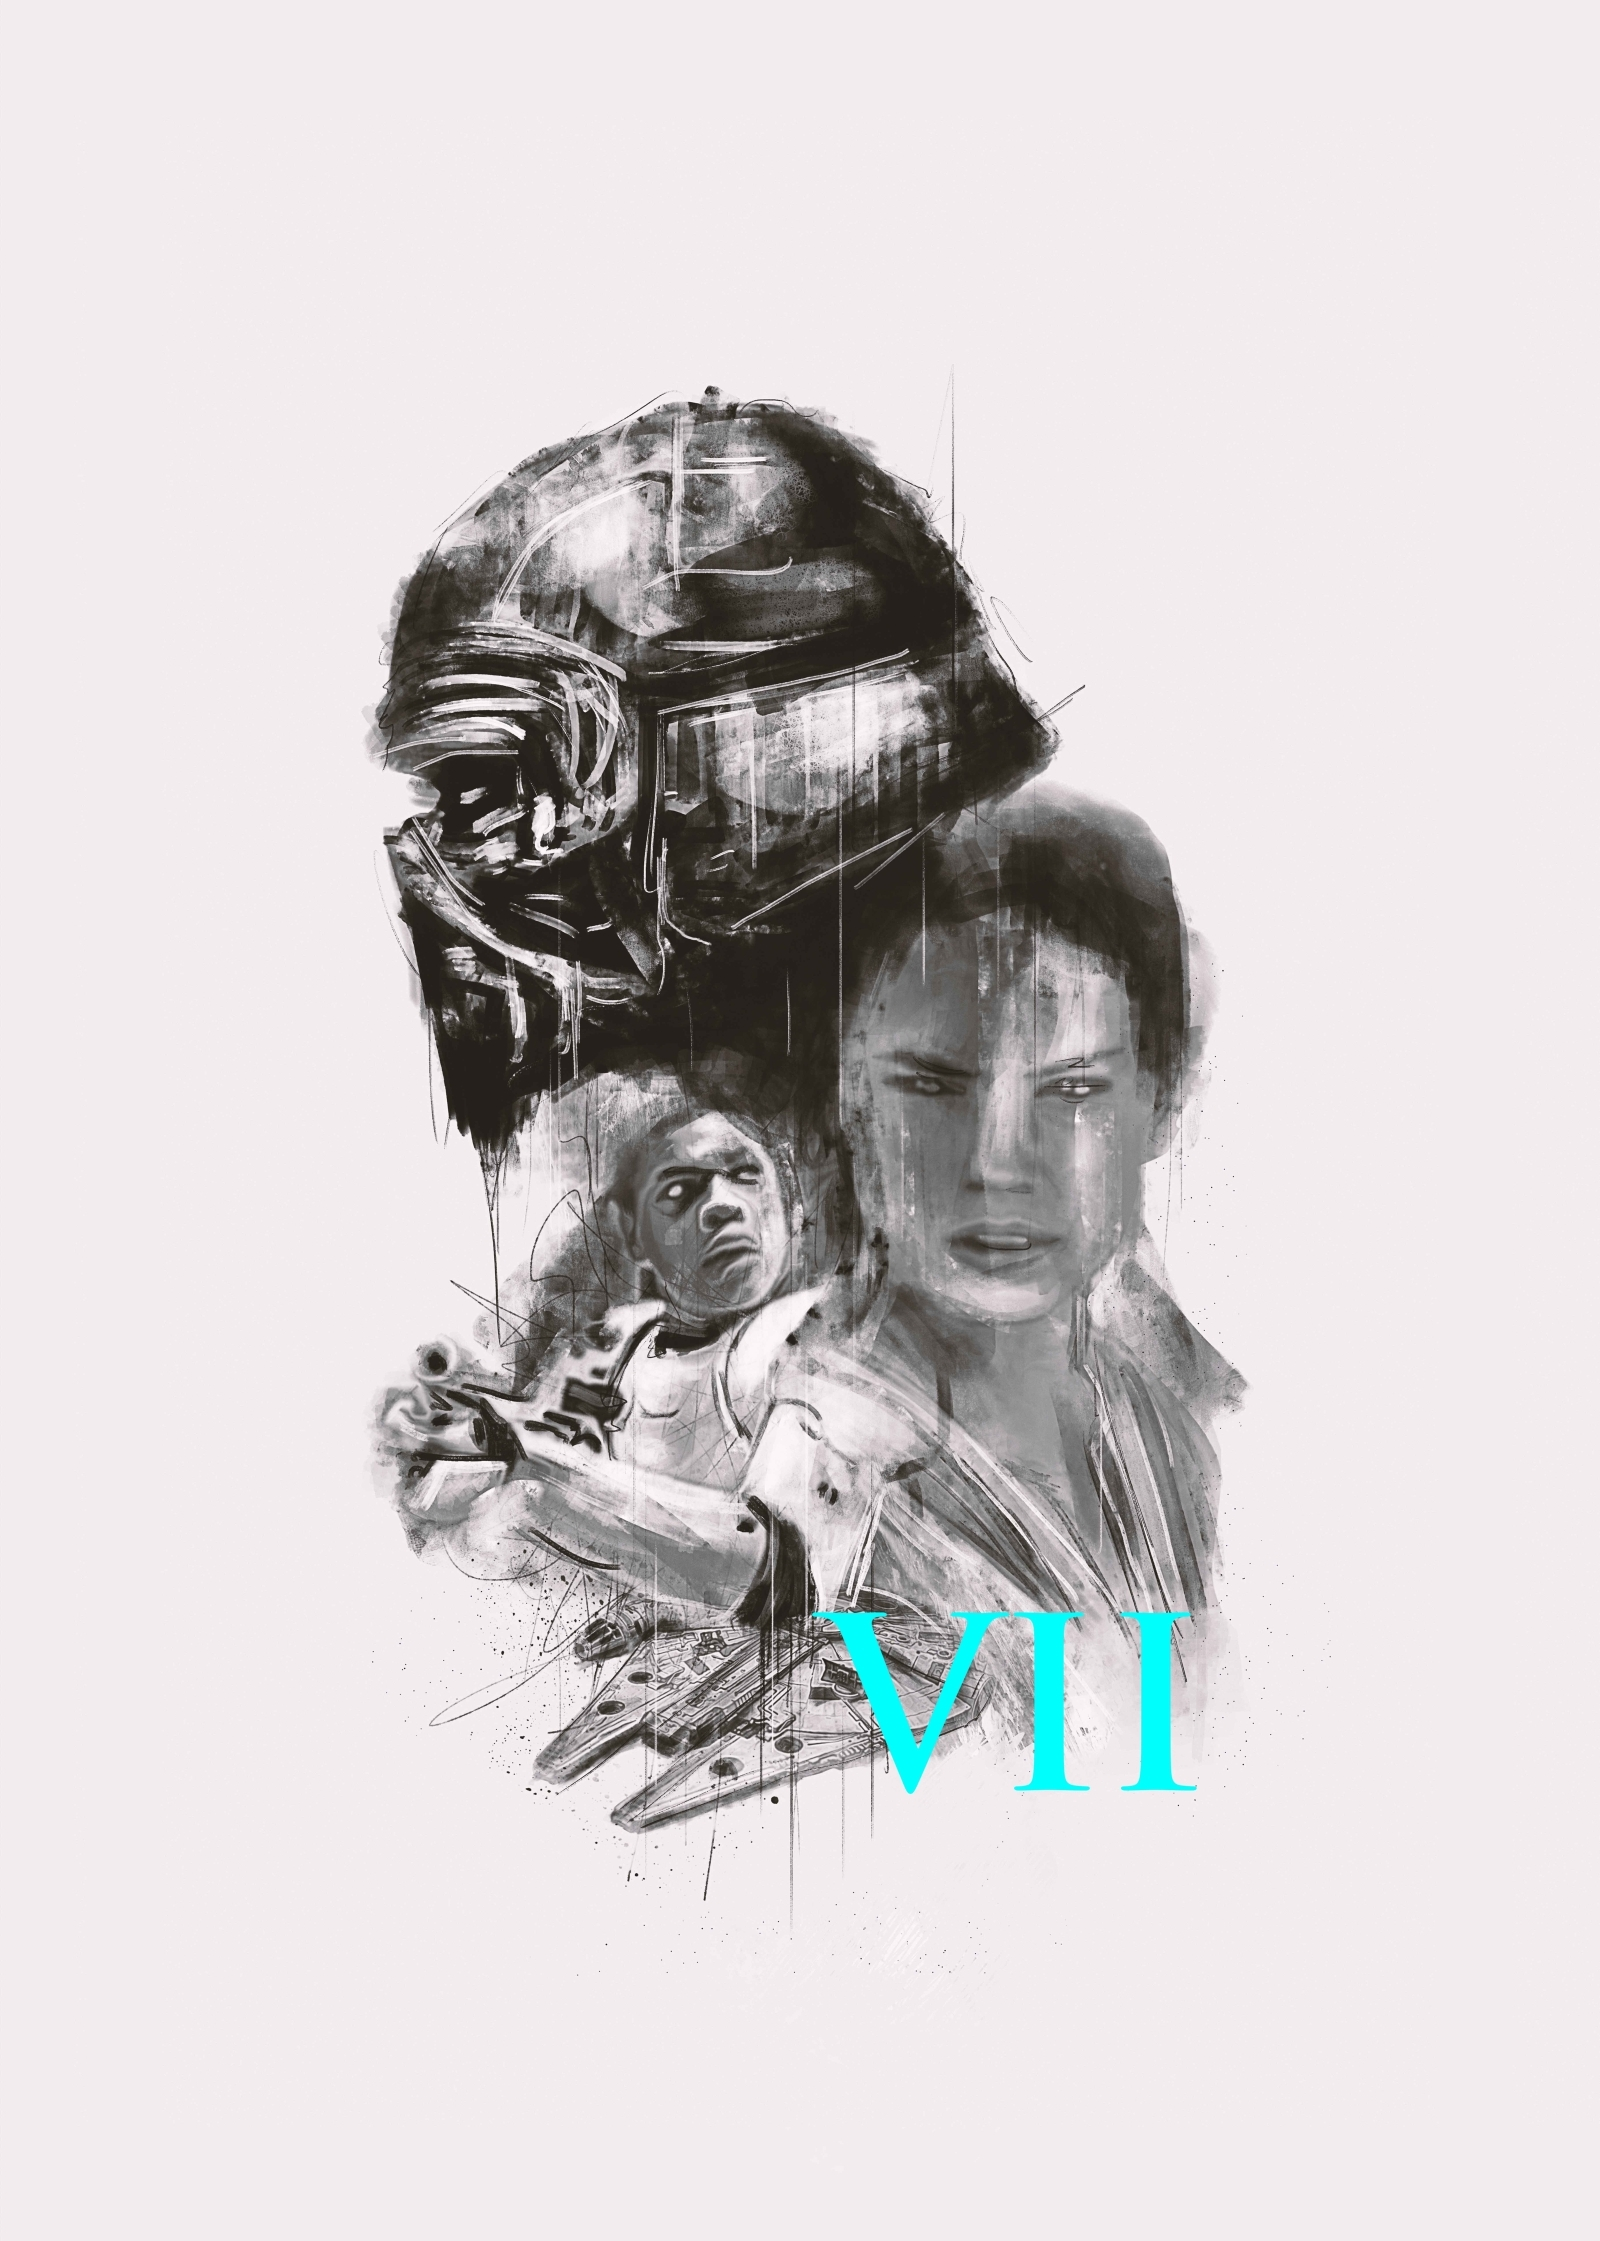 Star Wars The Force Awakens by Rafal Rola